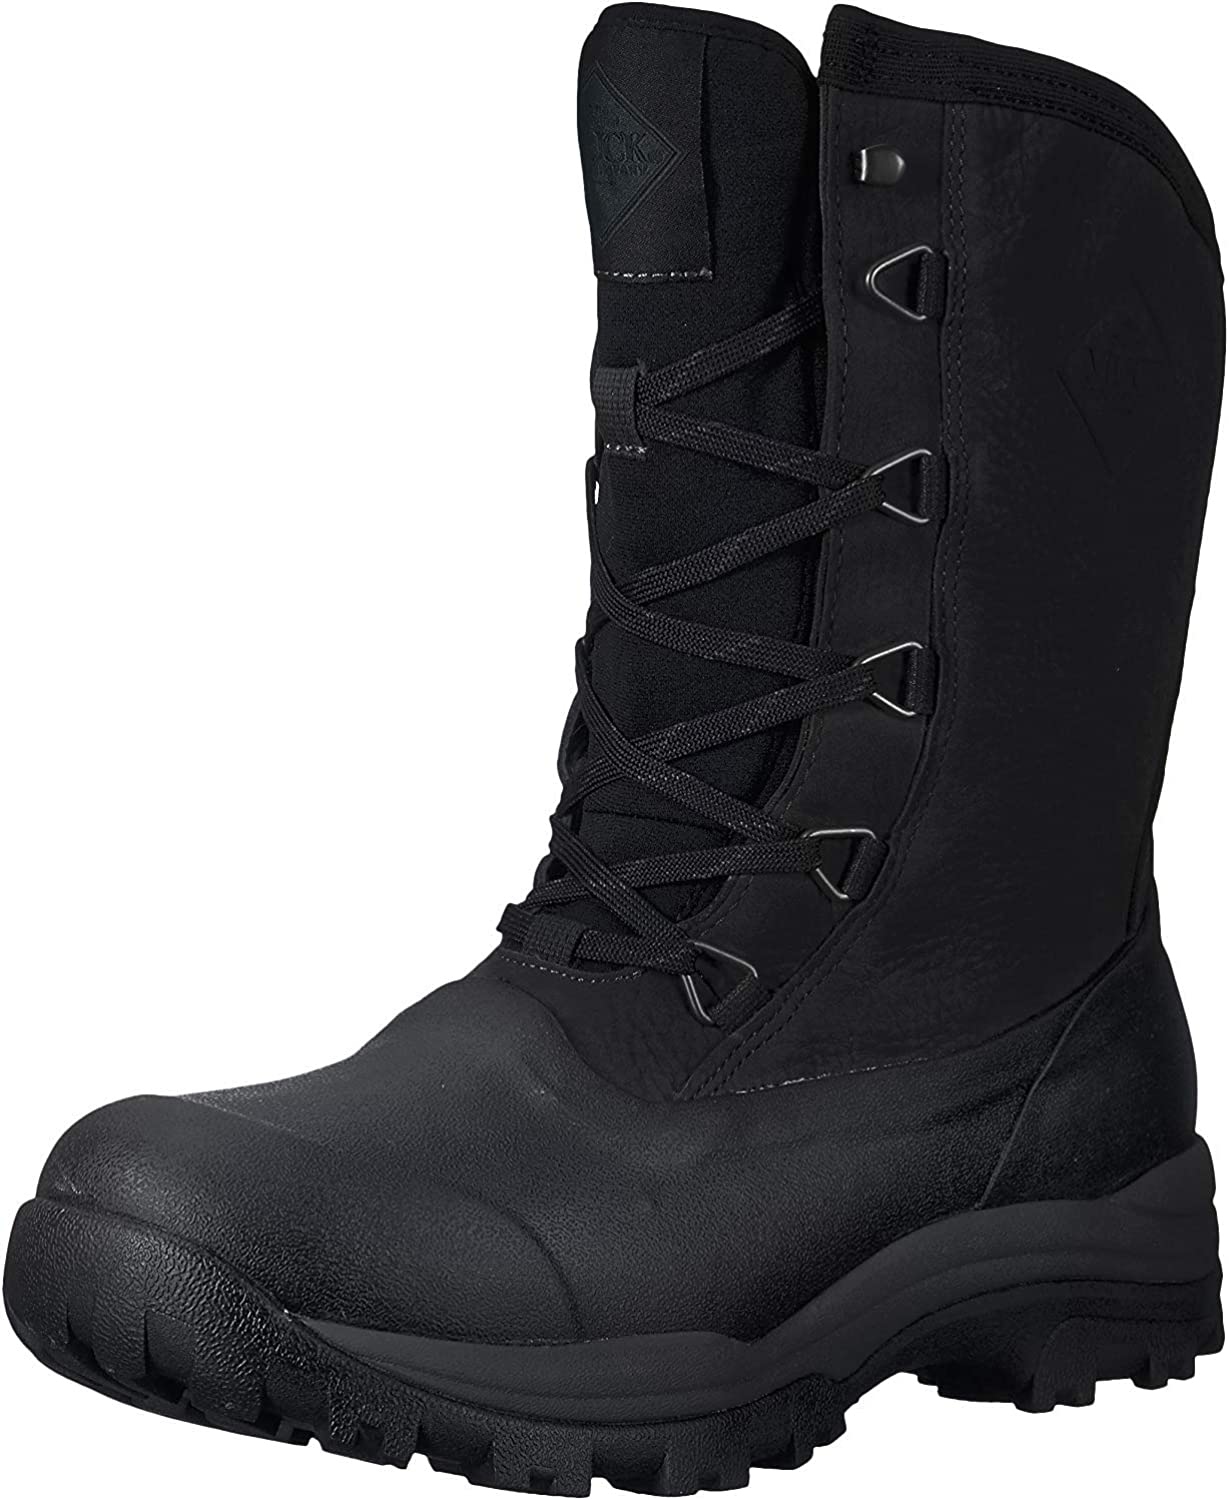 Muck Boots Mail order NEW before selling Arctic Outpost Mid-Height Leather Lace-Up Rubber Me